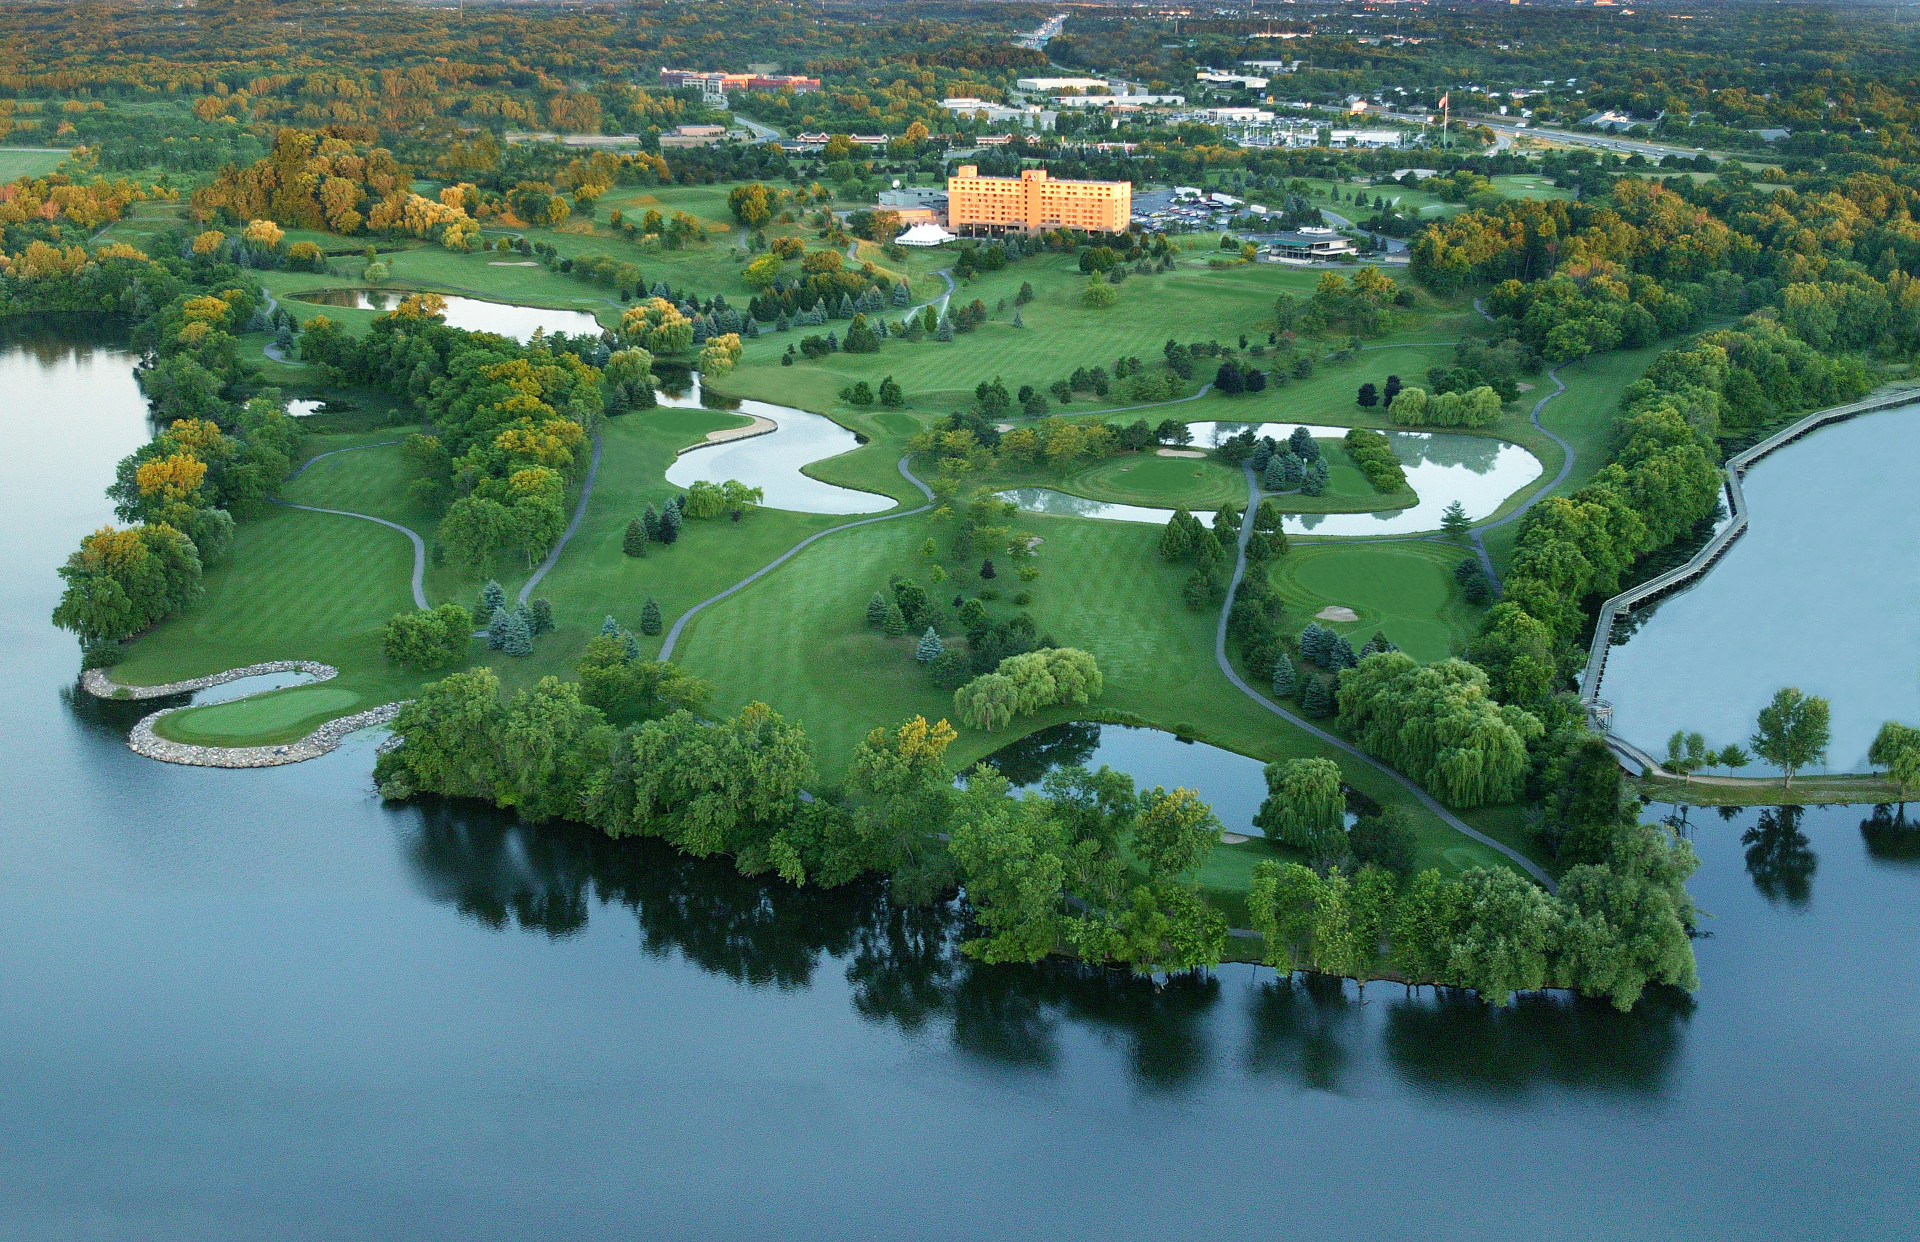 Welcome to the Eagle Crest Golf Resort with hole by hole videos and PGA Pro tips from Wes Blevins.